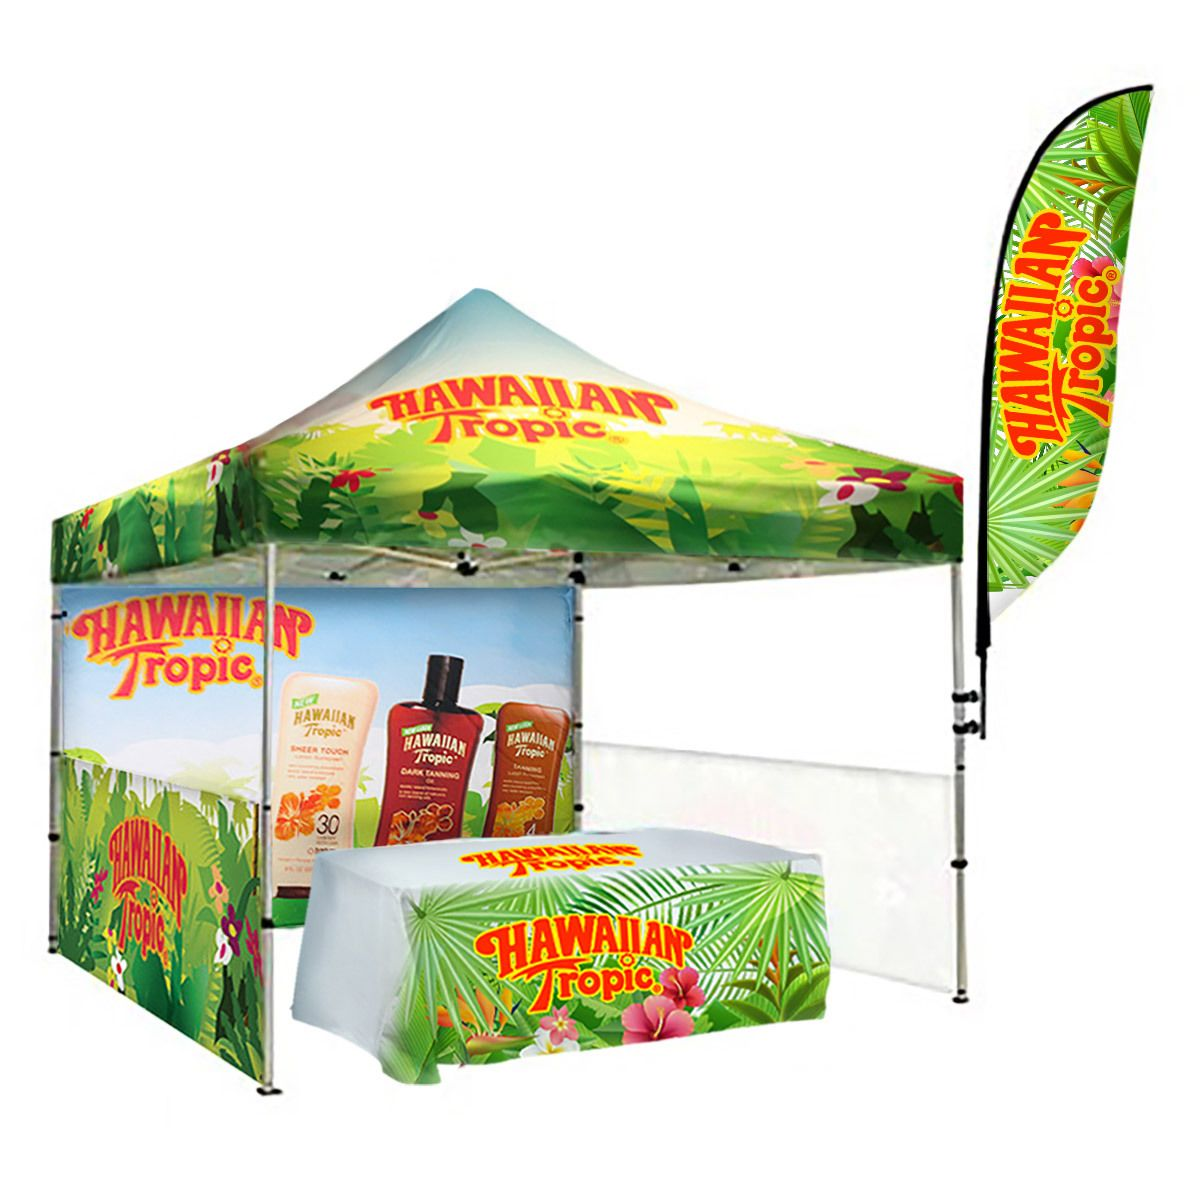 Custom Canopy (10x10ft)